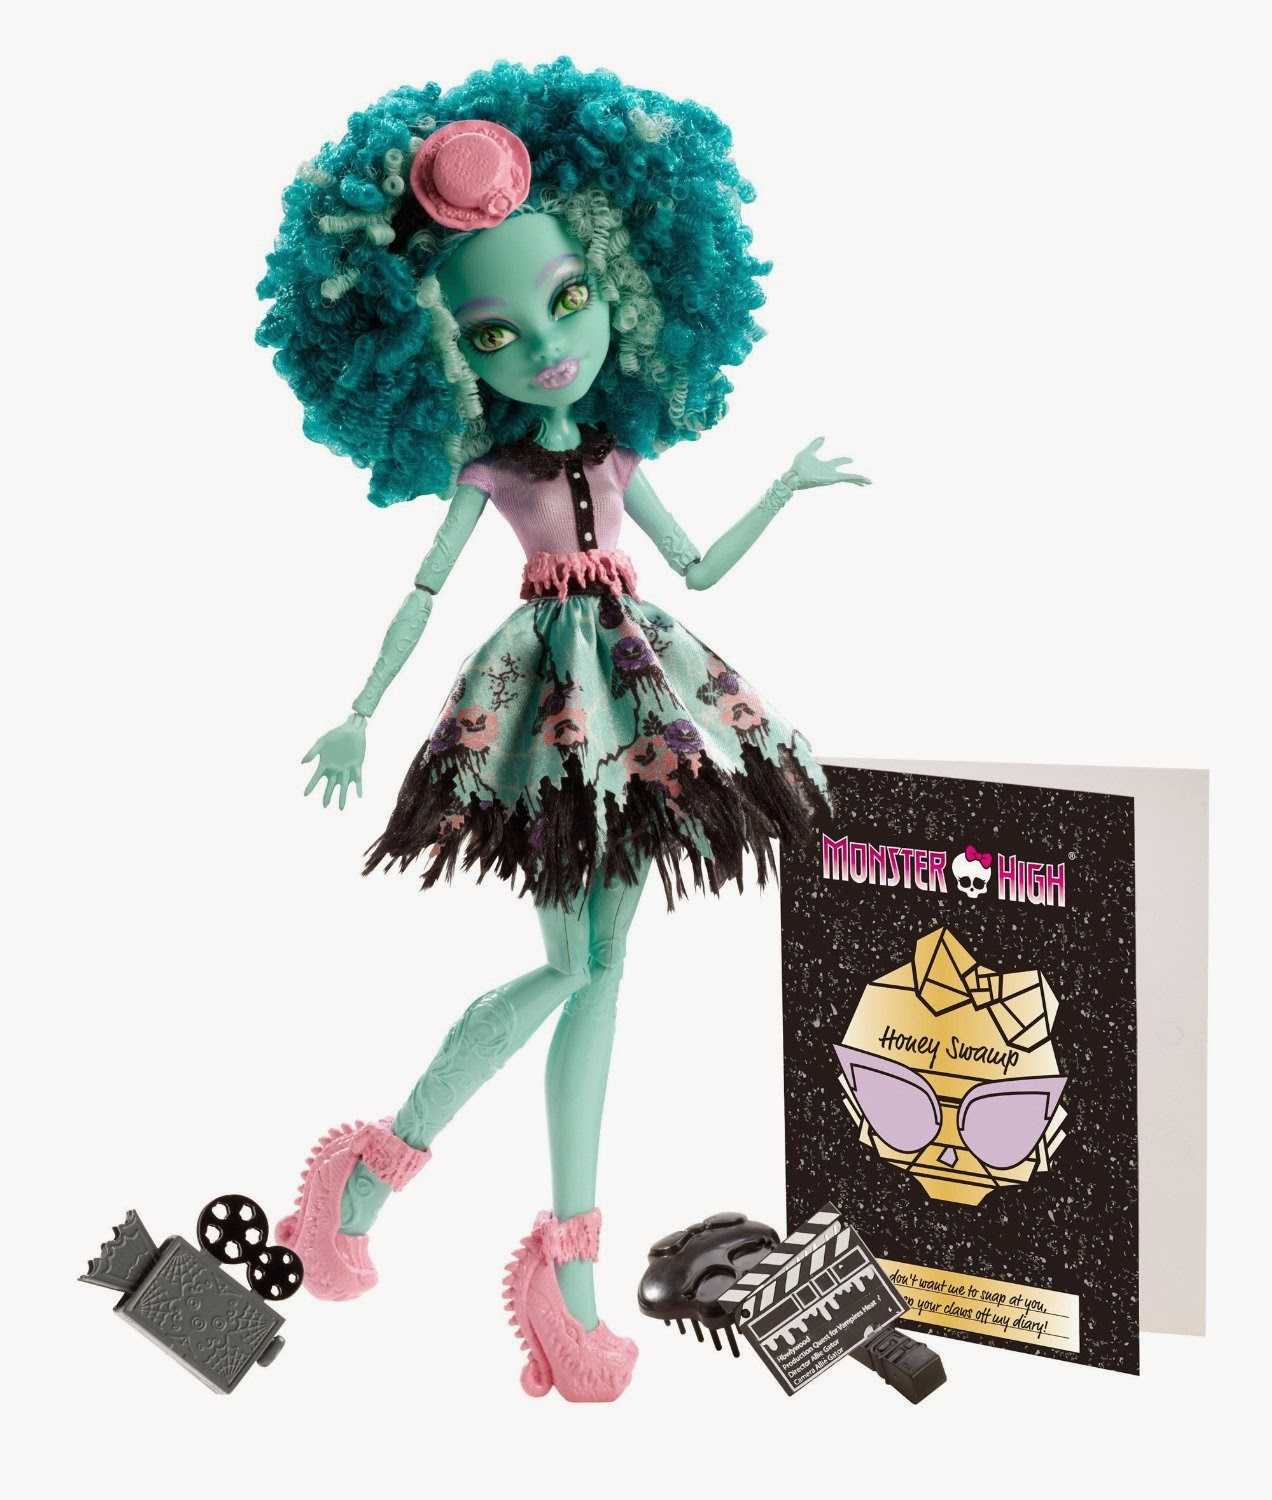 Monster High Toys : Libros y juguetes demagiaxfa toys muñeca honey swamp